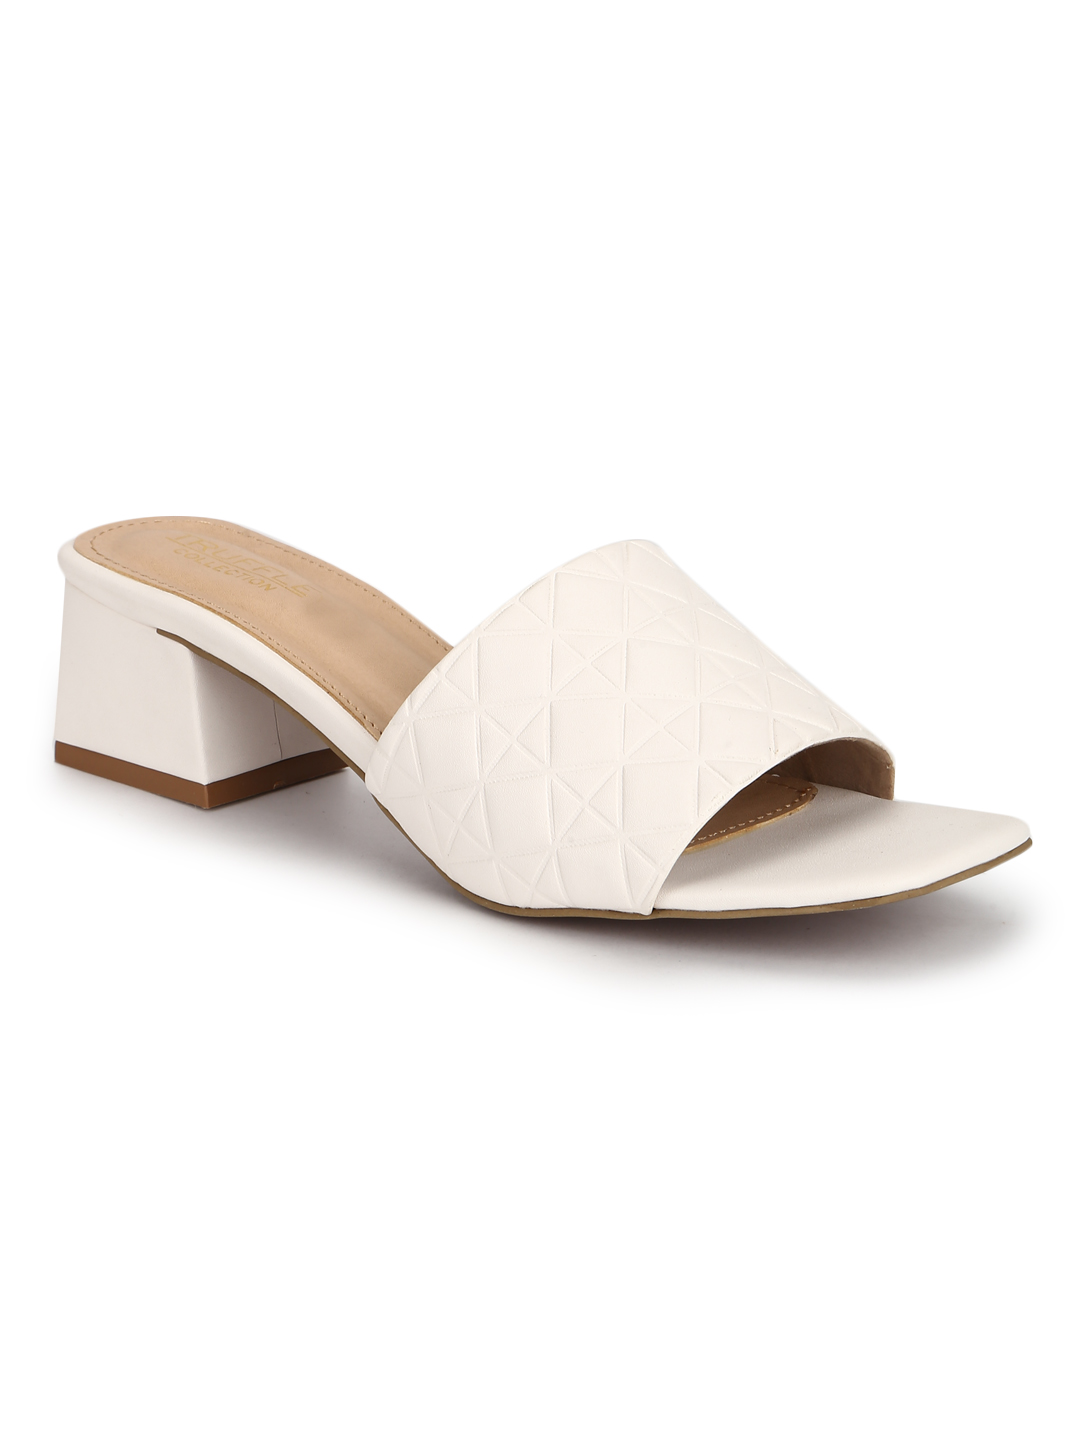 Truffle Collection   Truffle Collection White PU Textured Block Heel Sandals